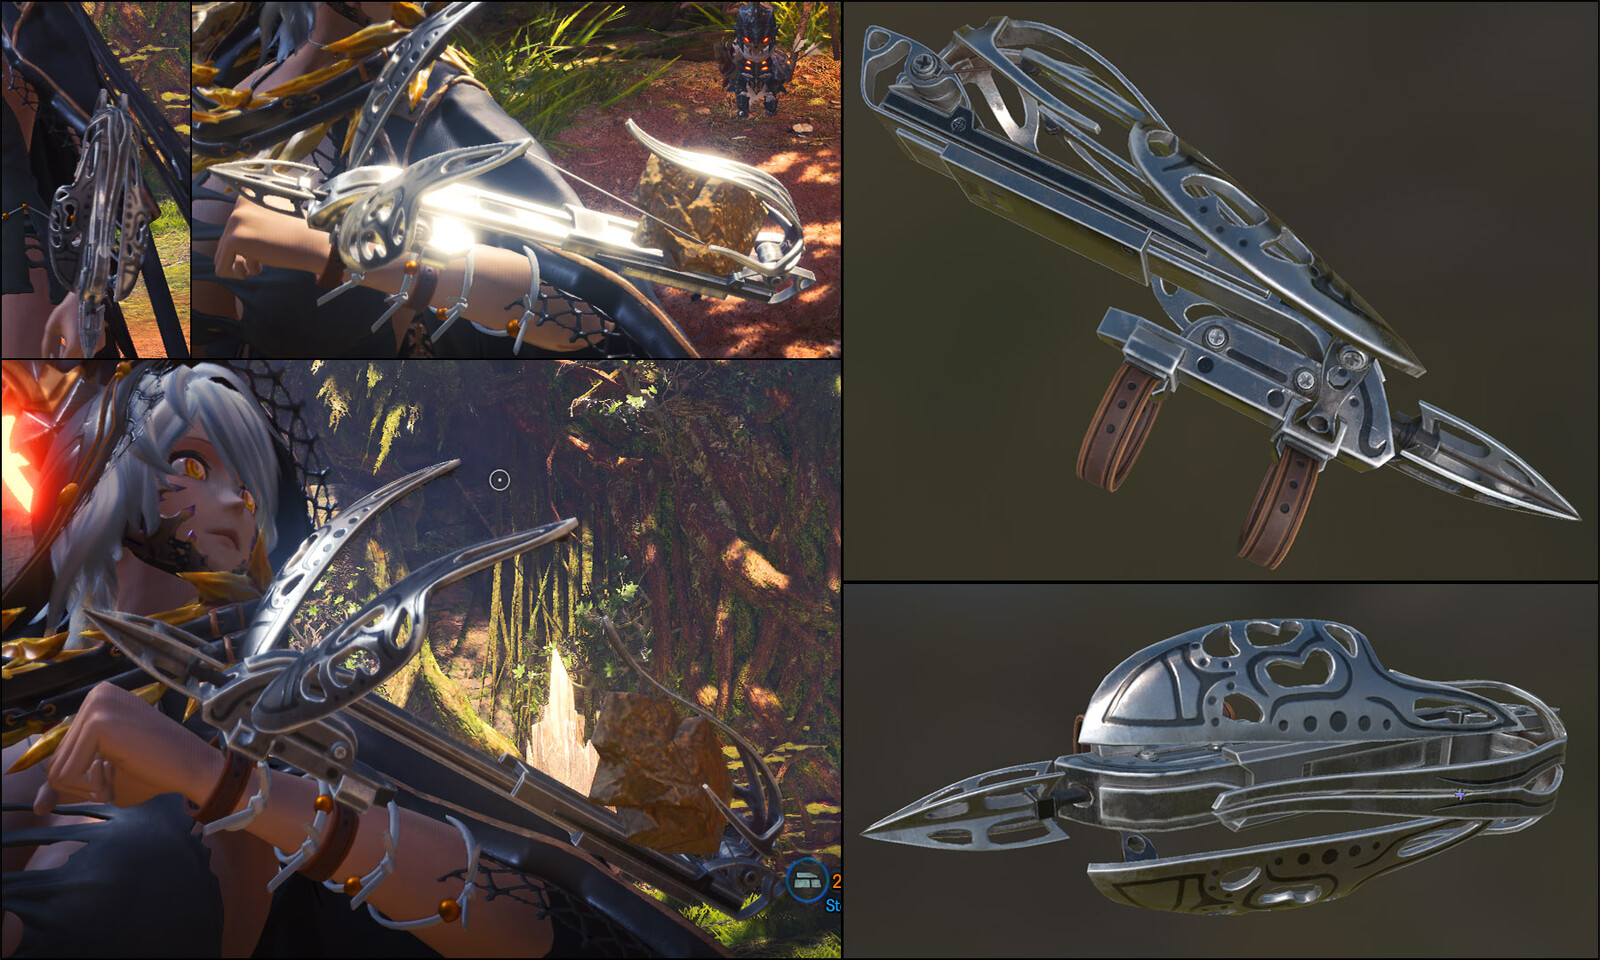 Snapshots of it on Io's arm and Substance Painter.